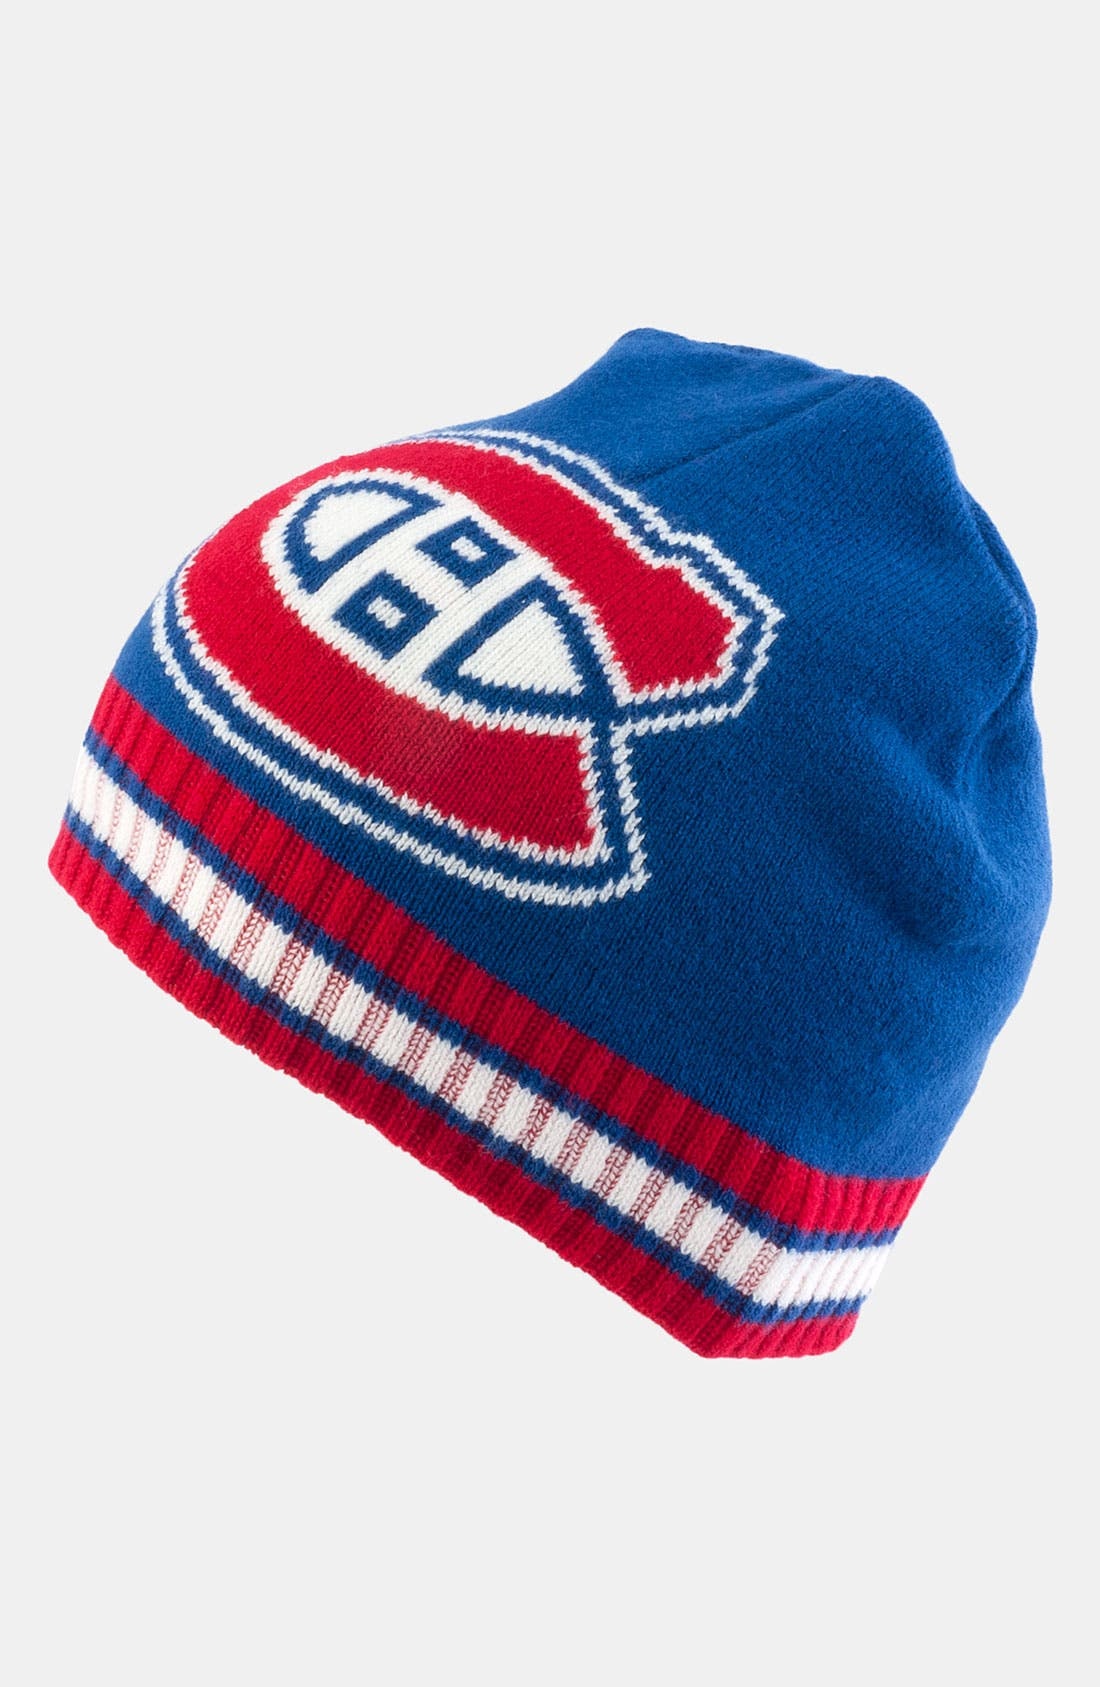 Main Image - American Needle 'Montreal Canadiens - Right Wing' Knit Hat